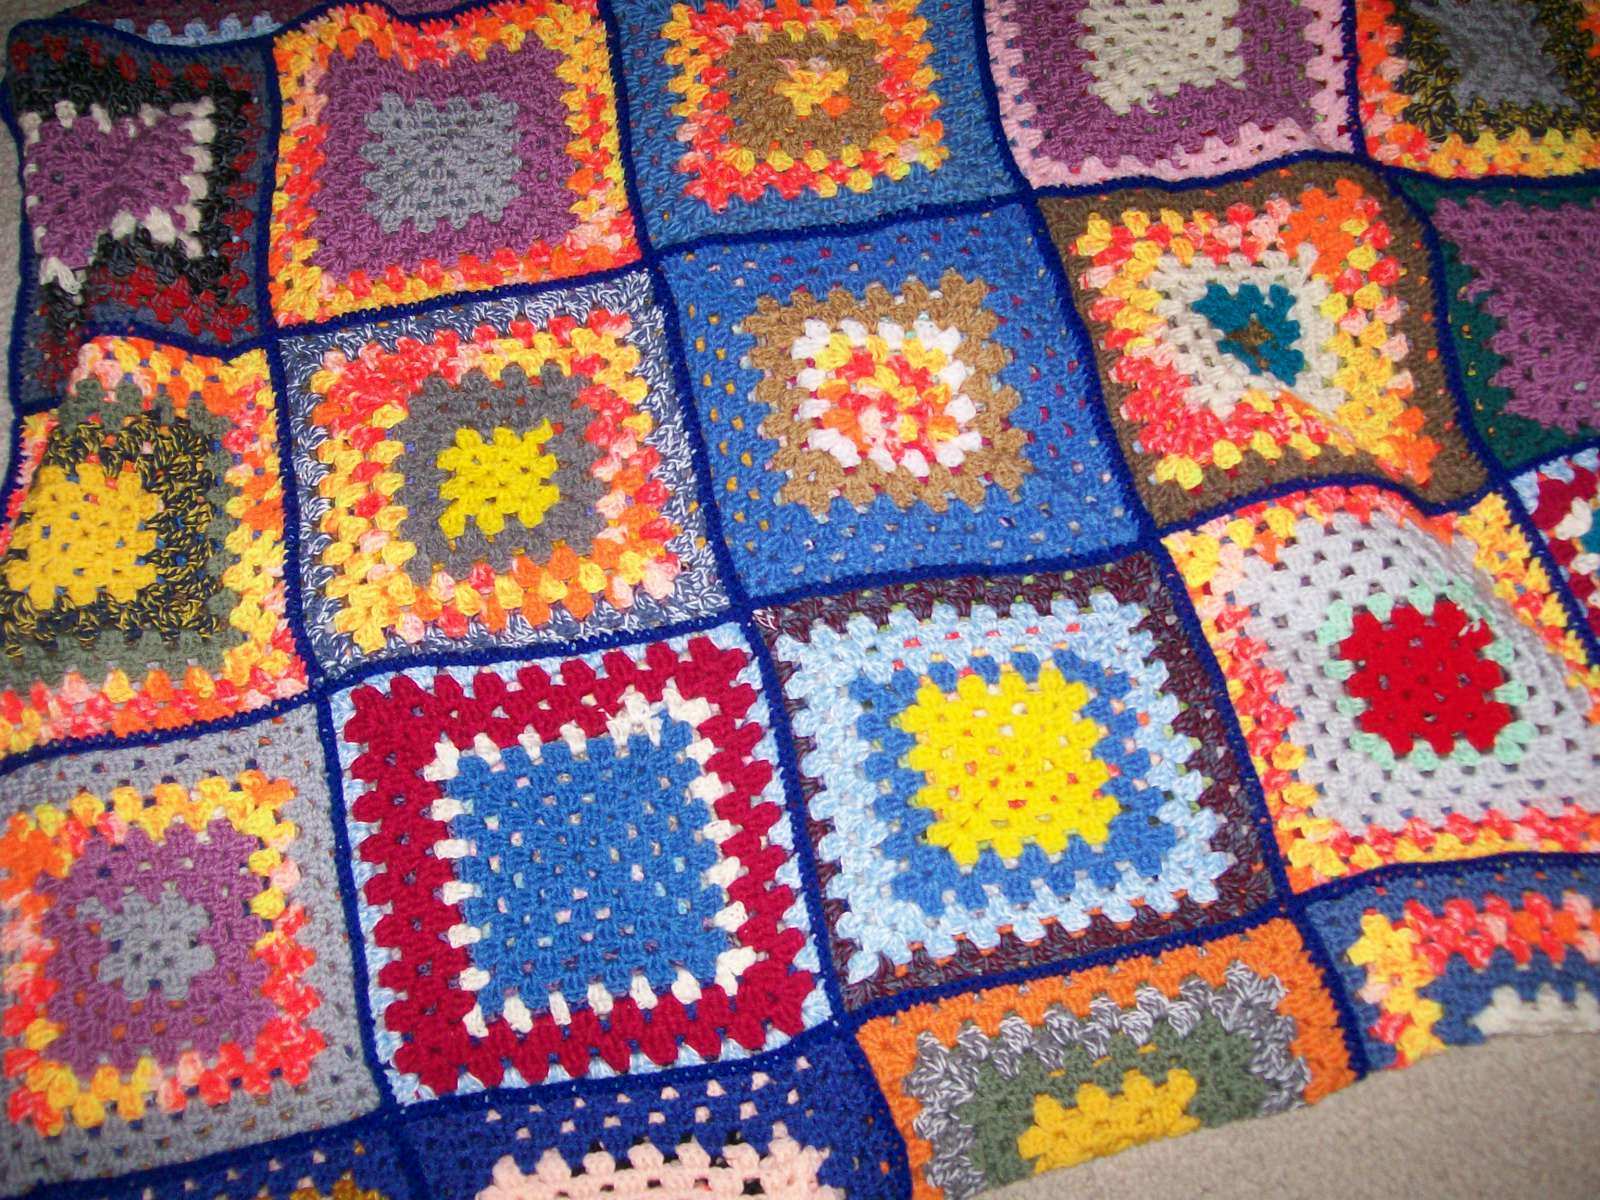 Quilt Patterns To Knit : Sew Many Quilts - Too Little Time: An Op Shop Rescue